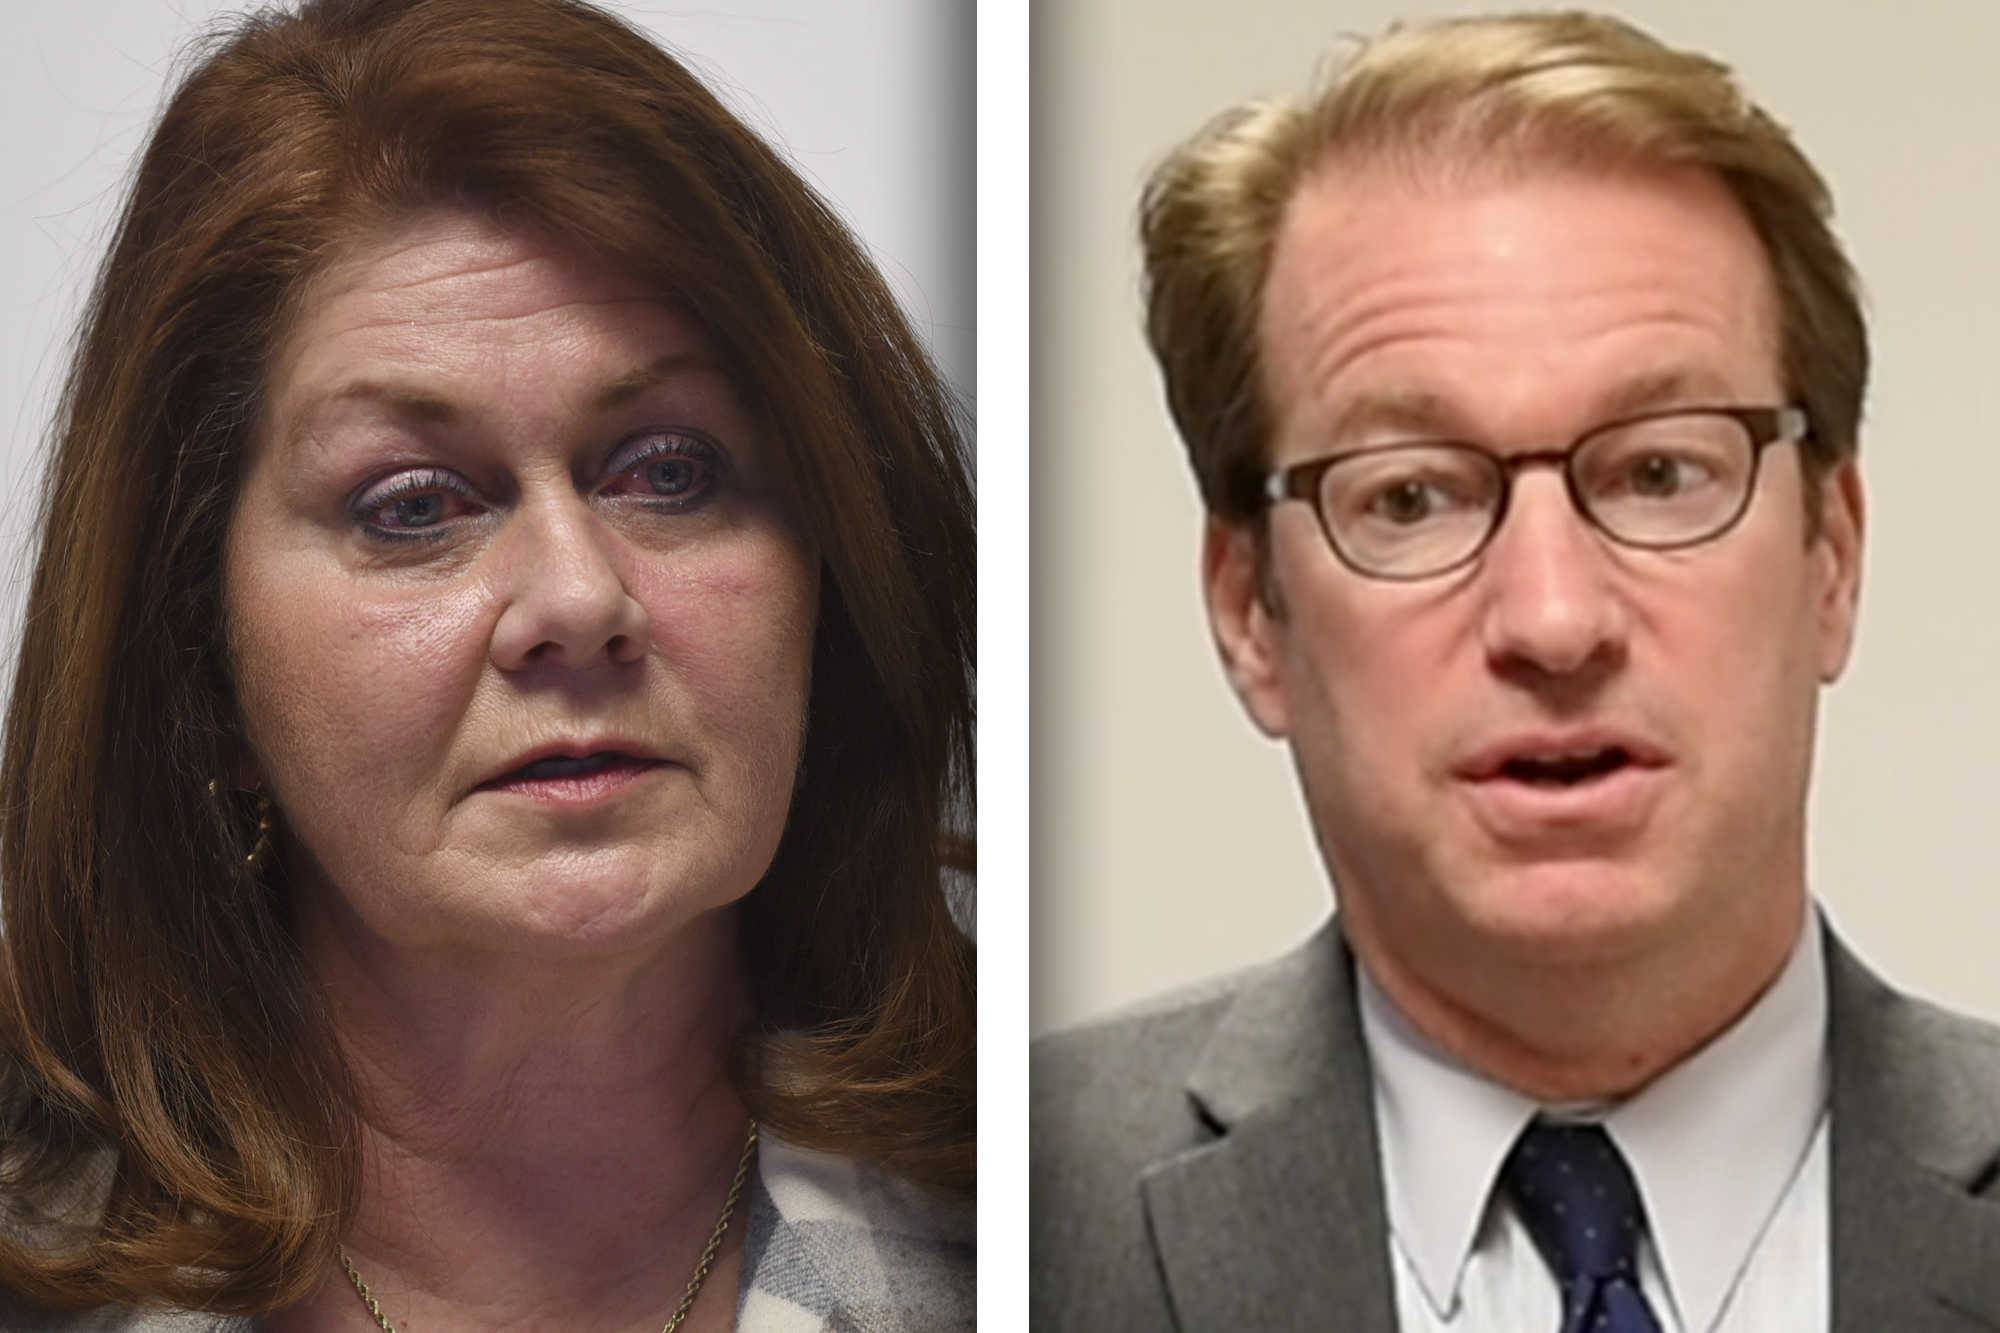 6th Congressional District candidates Amanda Howland and Peter Roskam disagree on what should be done with the Affordable Care Act.